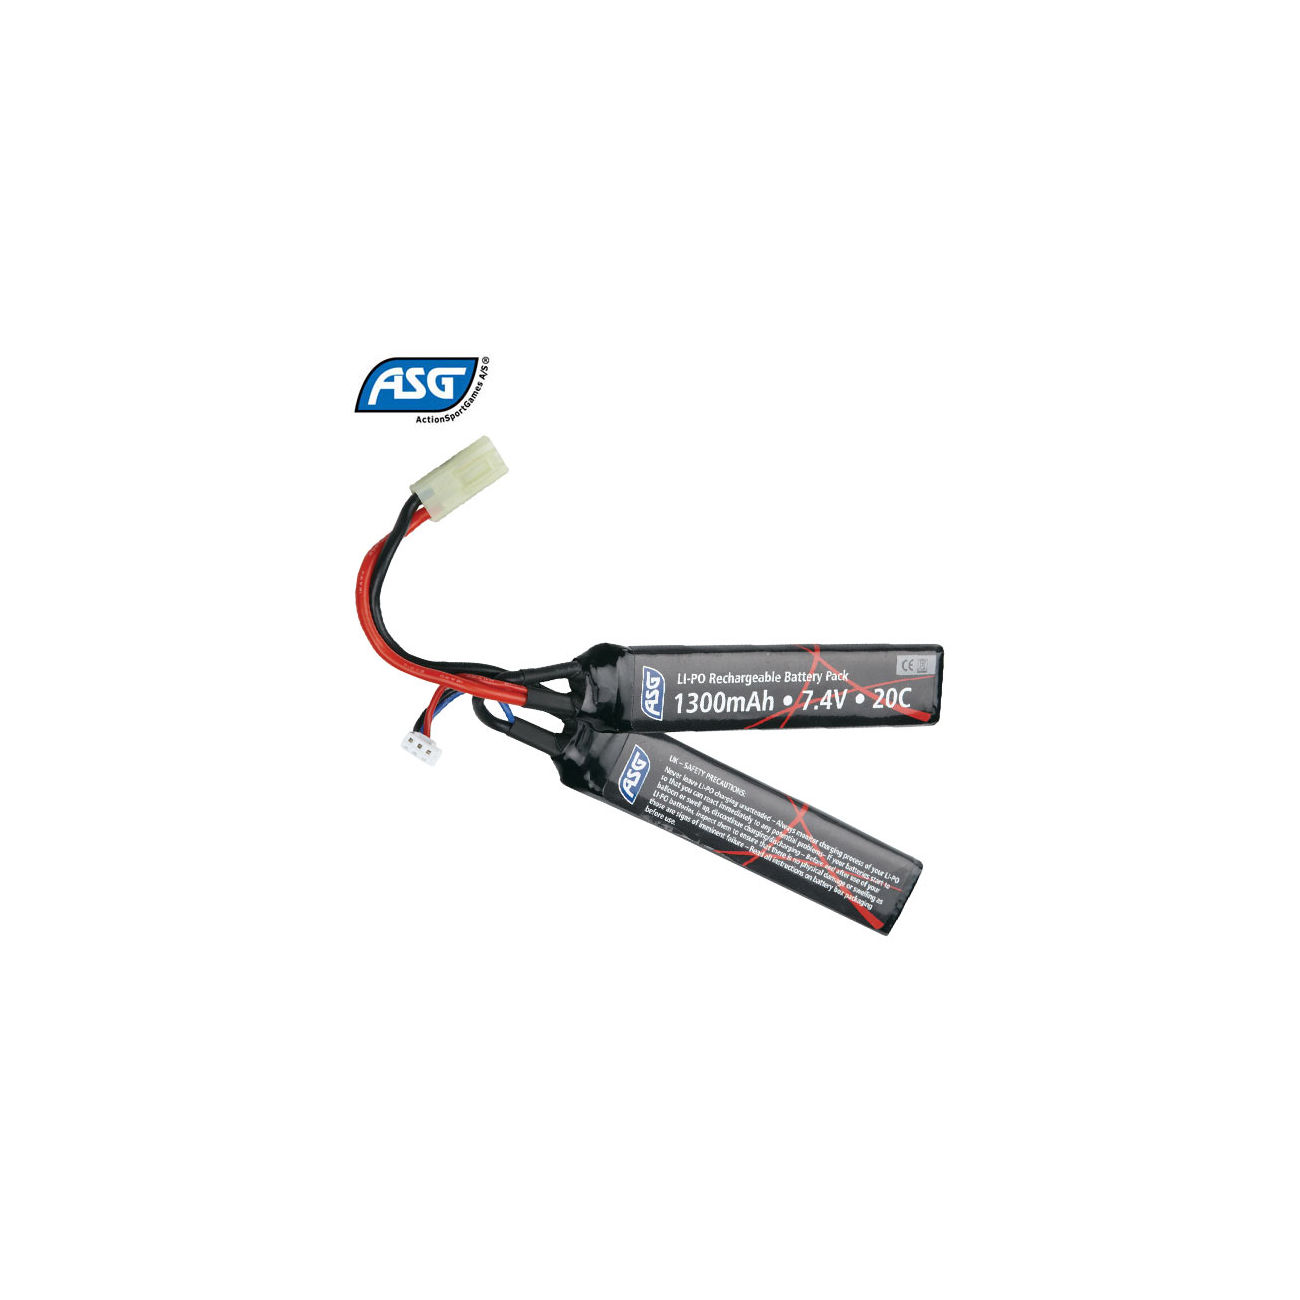 ASG LiPo Akku 7,4V 1300mAh 20C Two-Panel 0